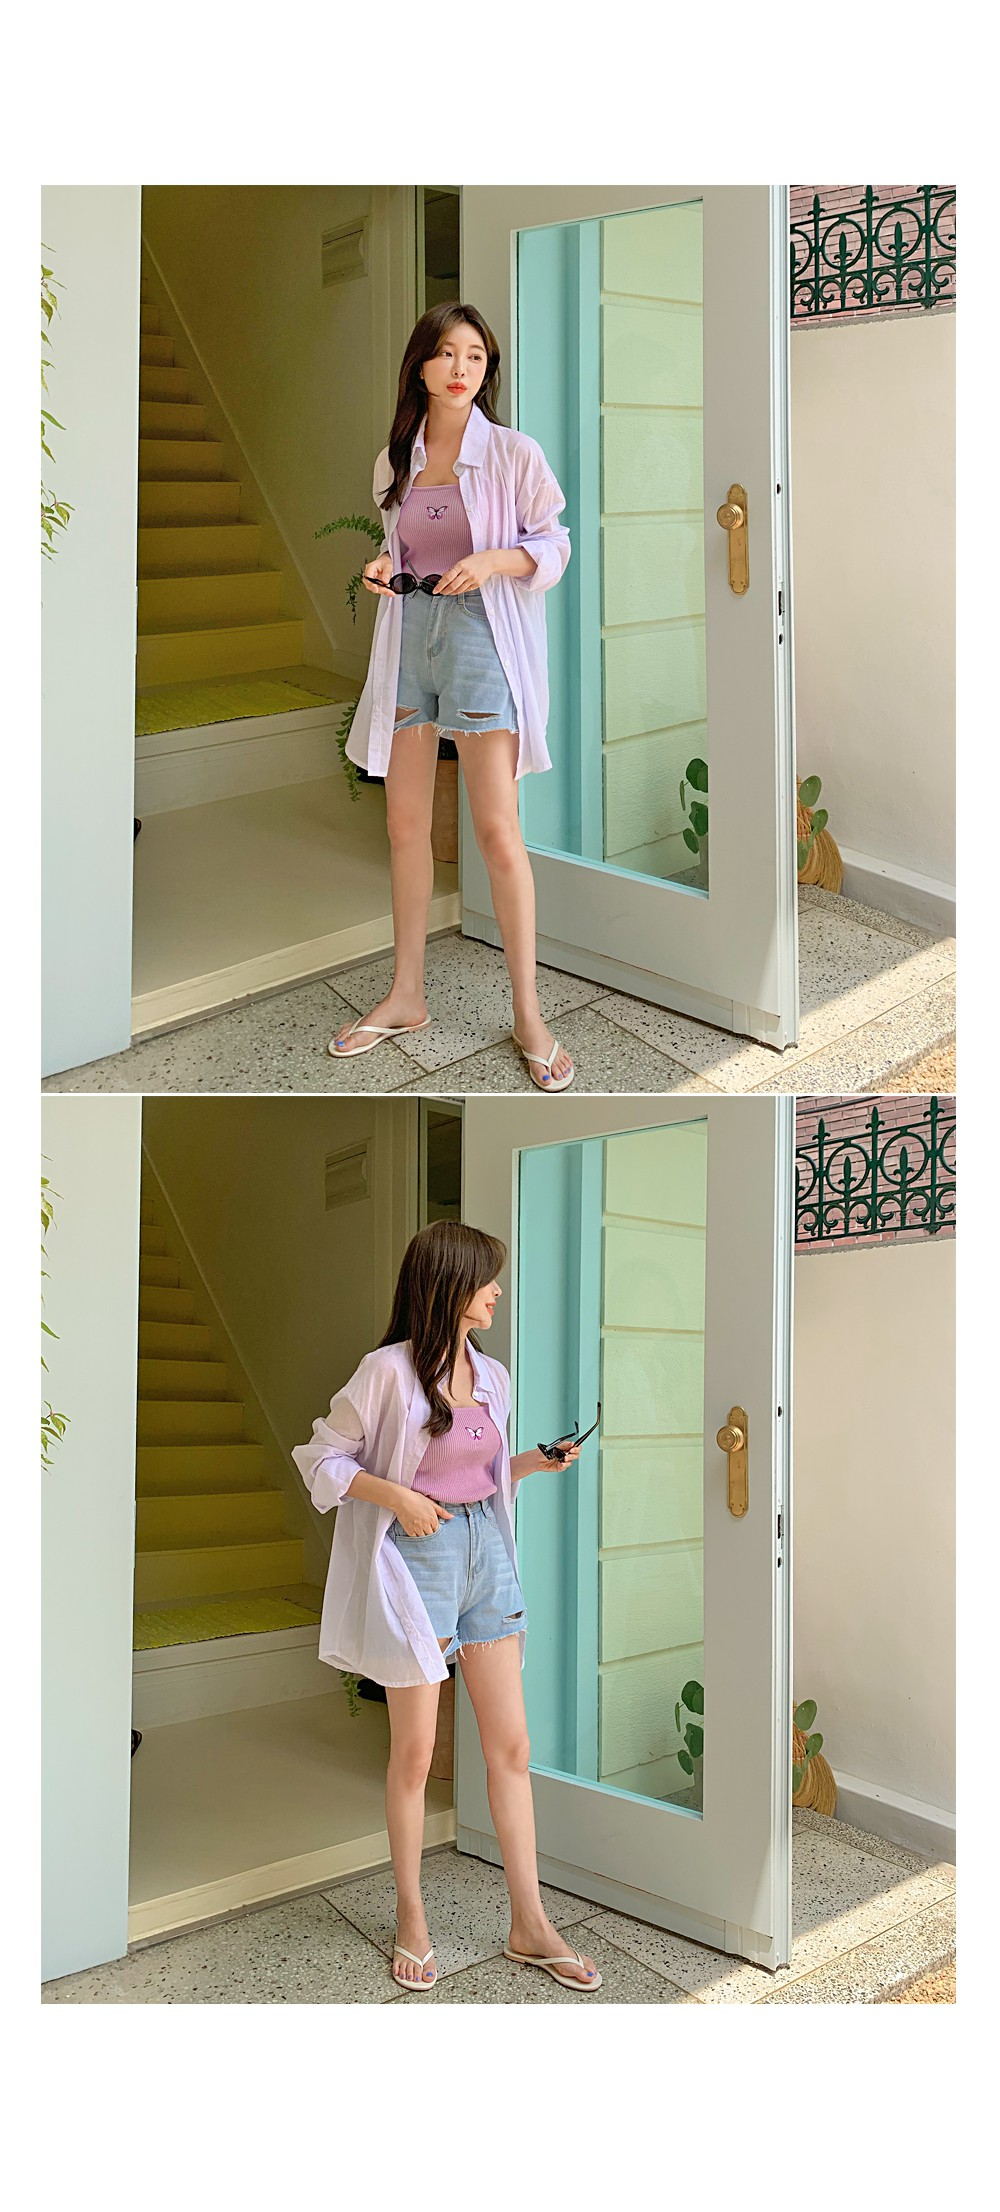 Vivid Overfit NB ♥ Fully Recommended Perfect body cover